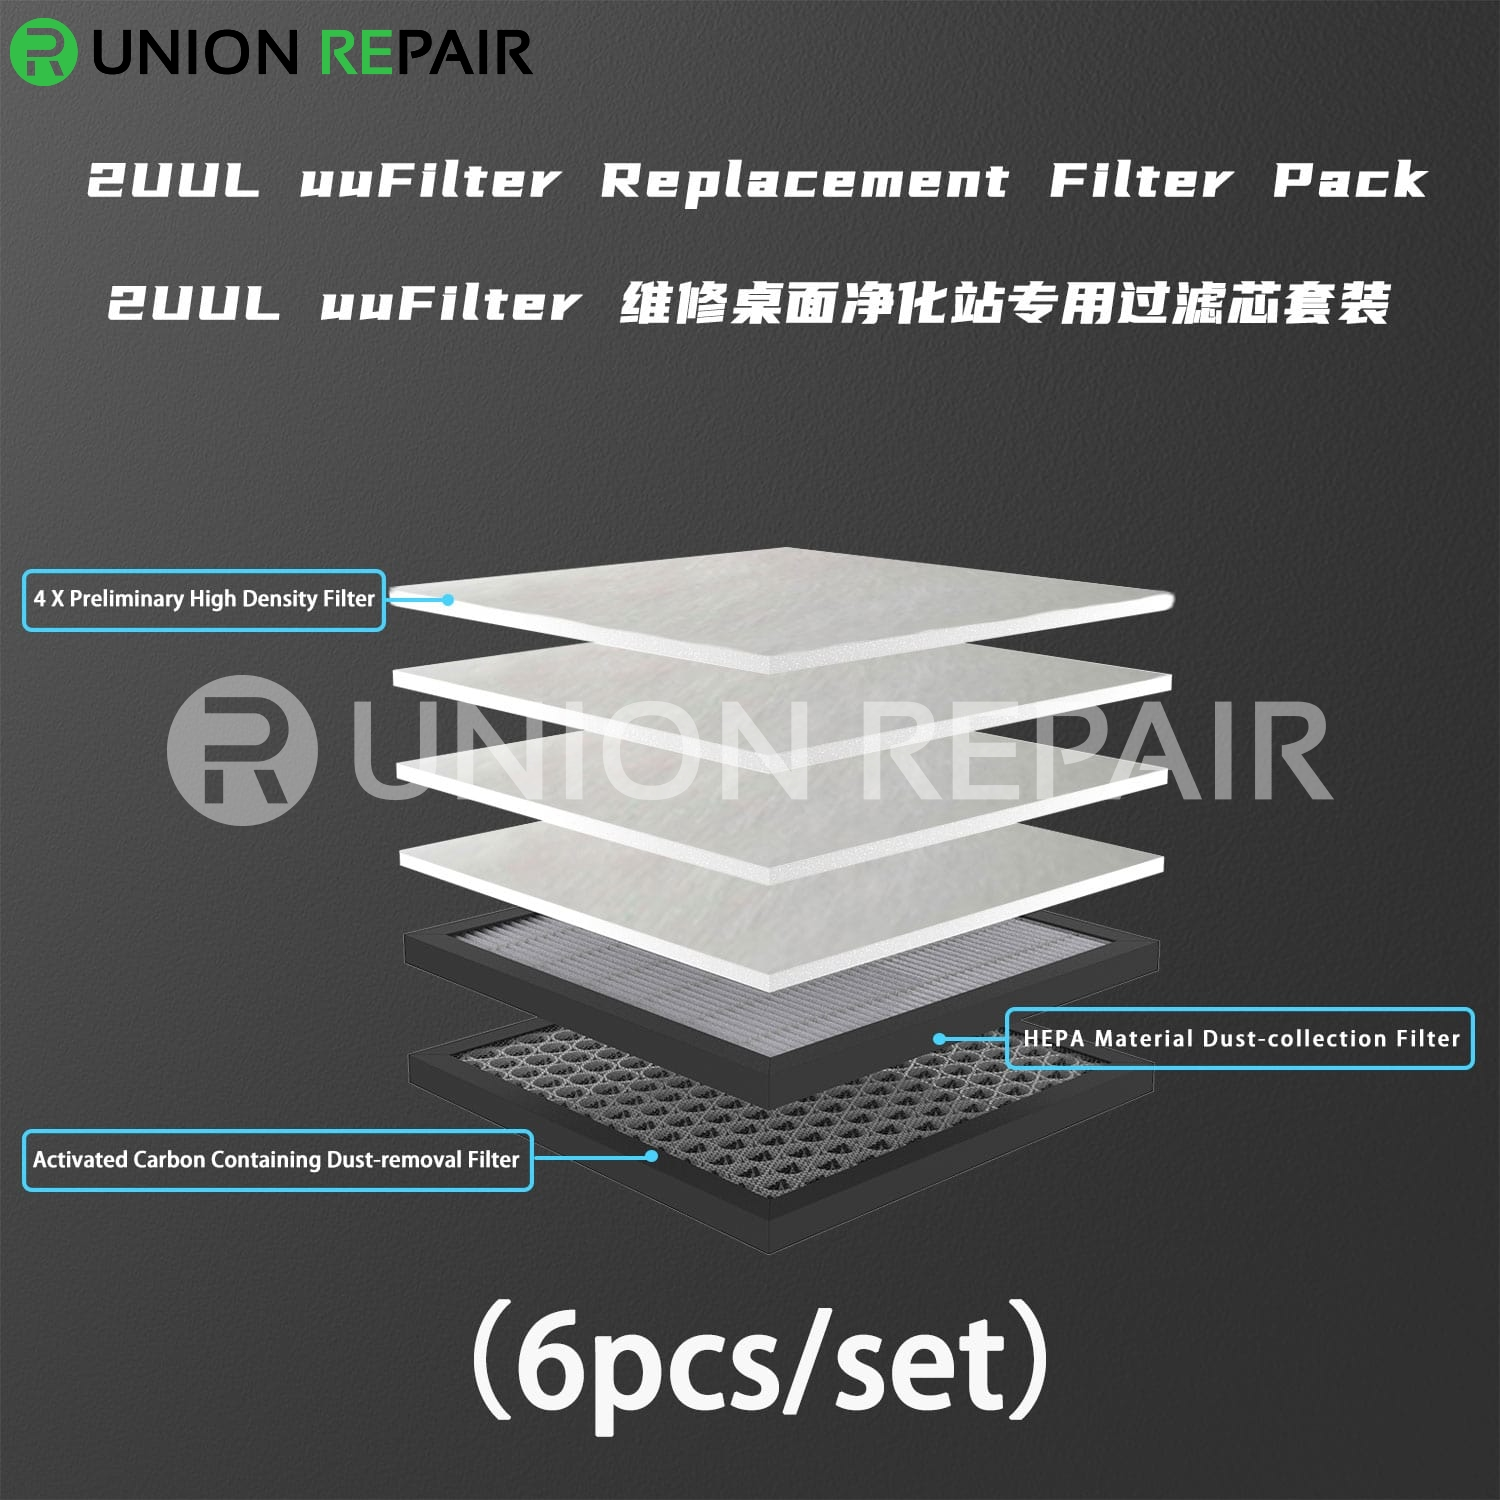 2UUL uuFilter DeskTop Fume Extractor, Condition: Filter Net (6pcs/set)